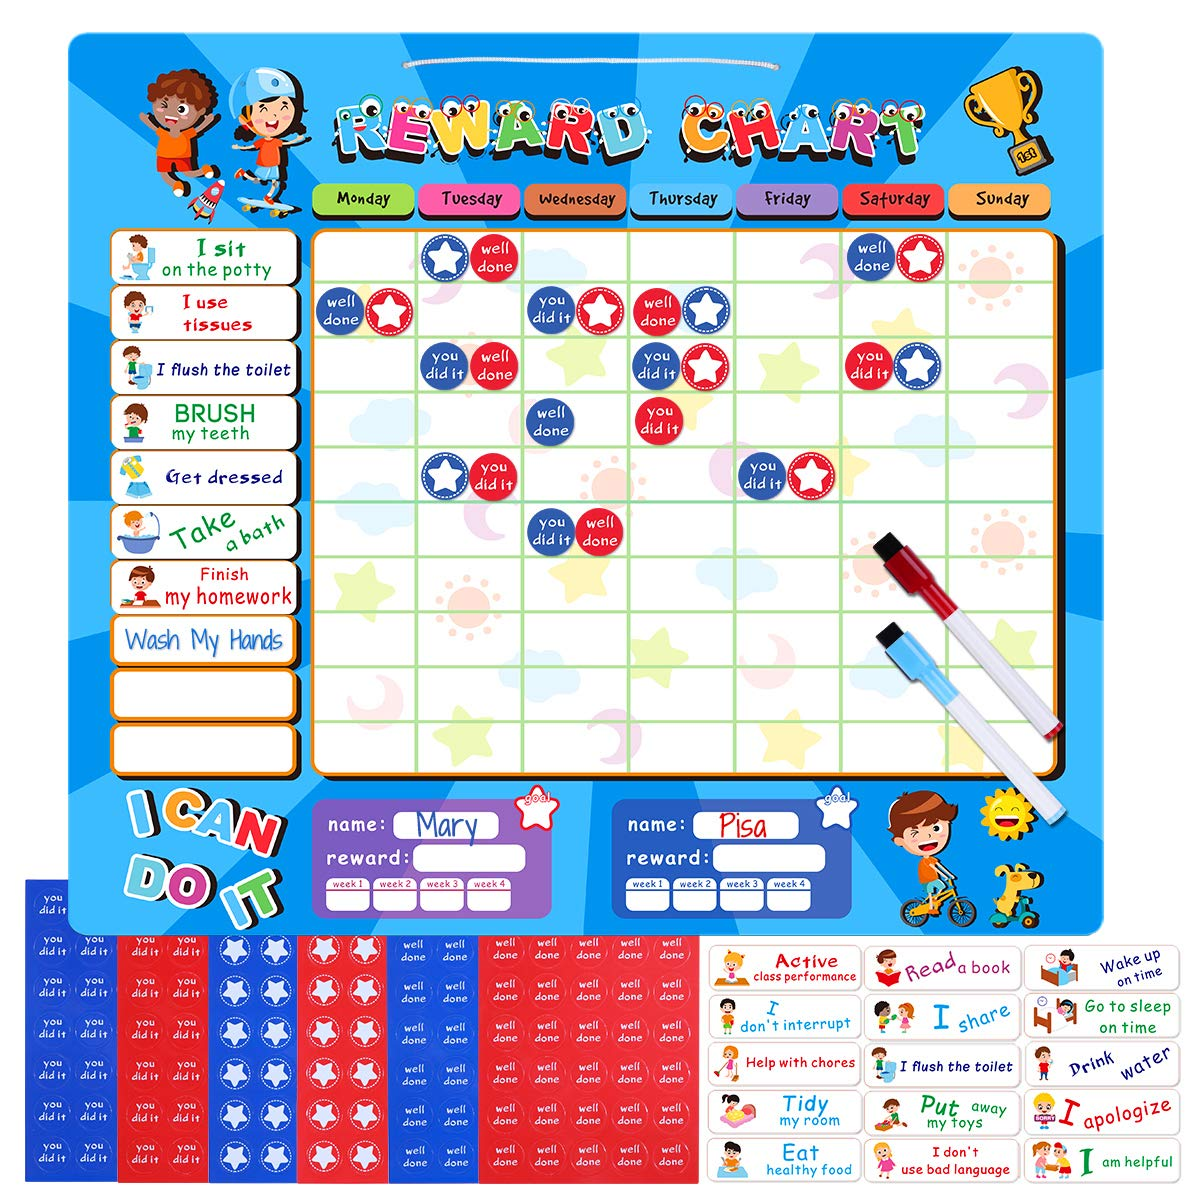 iBaseToy Reward Chart, Magnetic Refrigerator Chore Board for Two Kids, 15 x 13 inch, Responsibility Toddler Chart for Family,Kindergarten and Early Education Center by iBaseToy